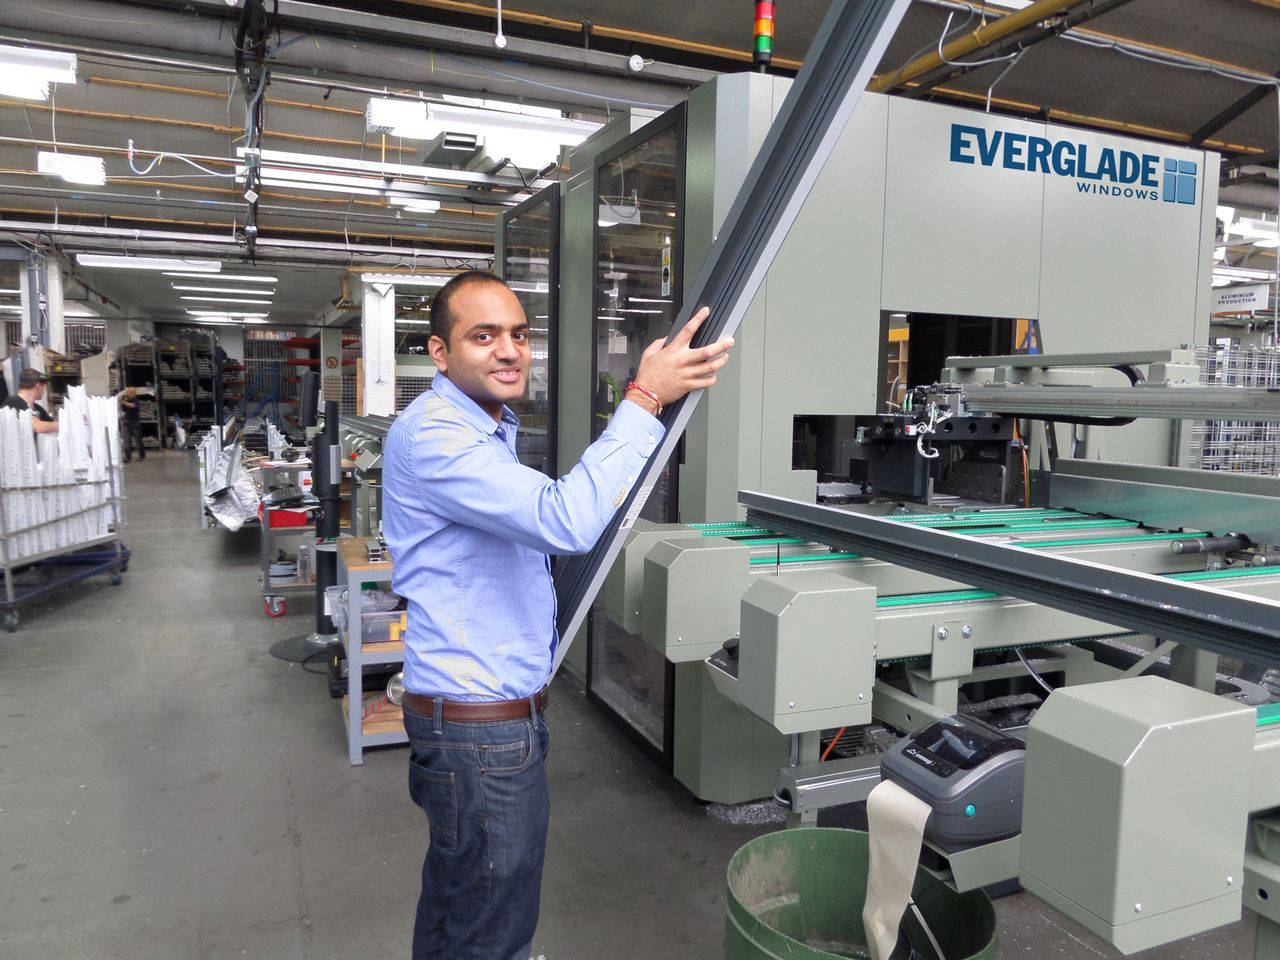 Everglade Factory manufacturing